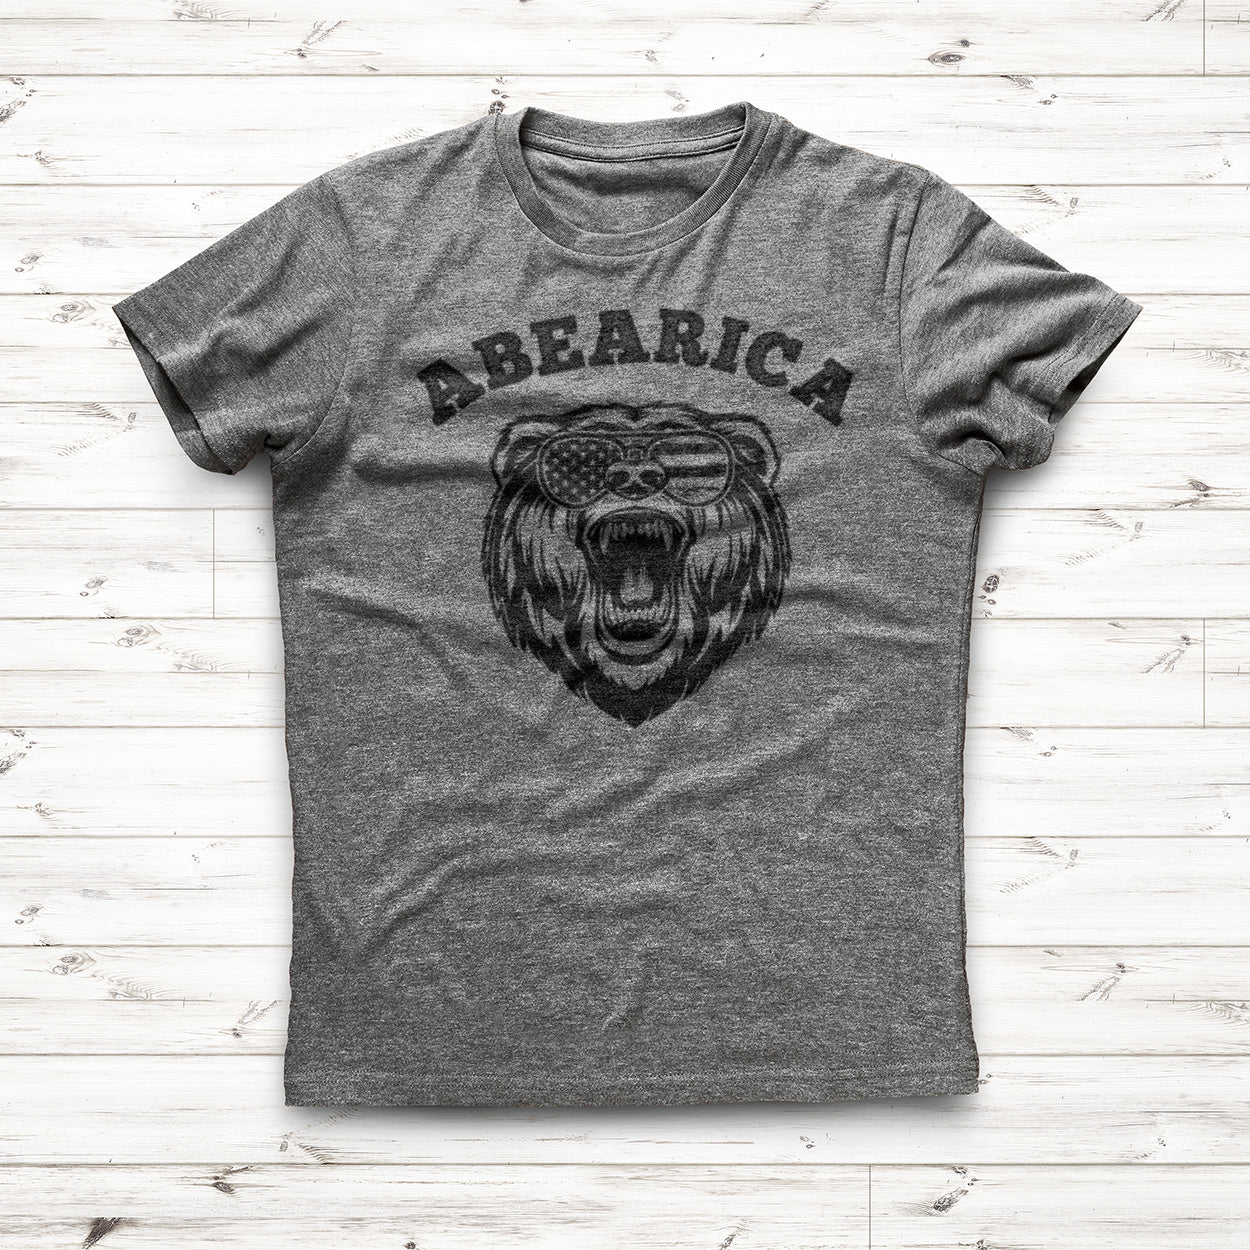 Patriotic - Abearica Next Level Premium Short Sleeve T-Shirt